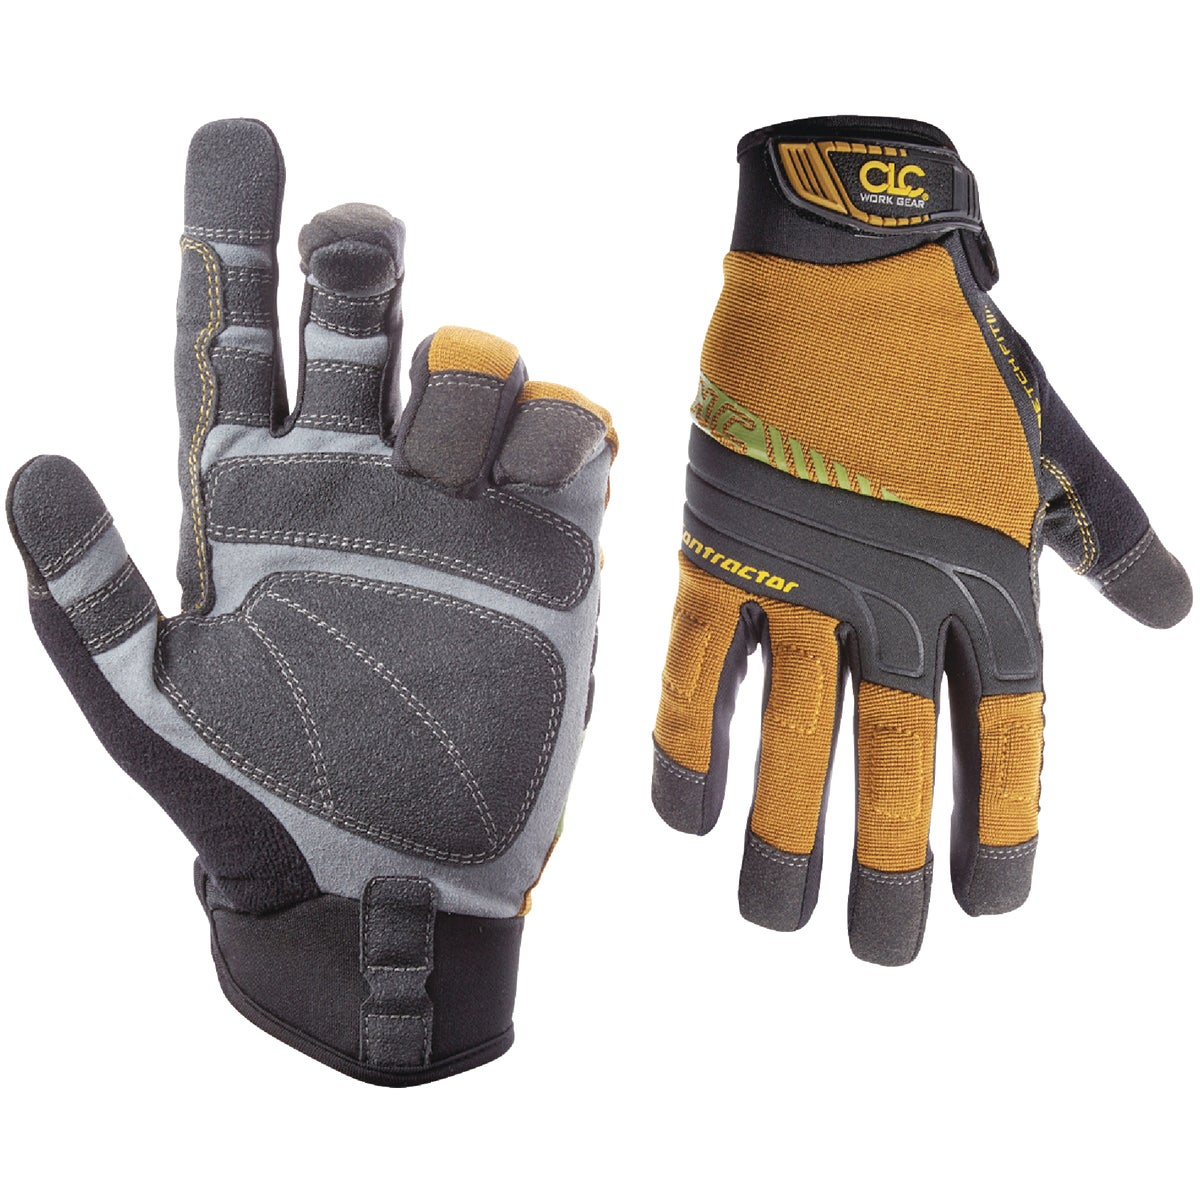 MED CONTRACTOR GLOVE - 160M by Custom Leathercraft